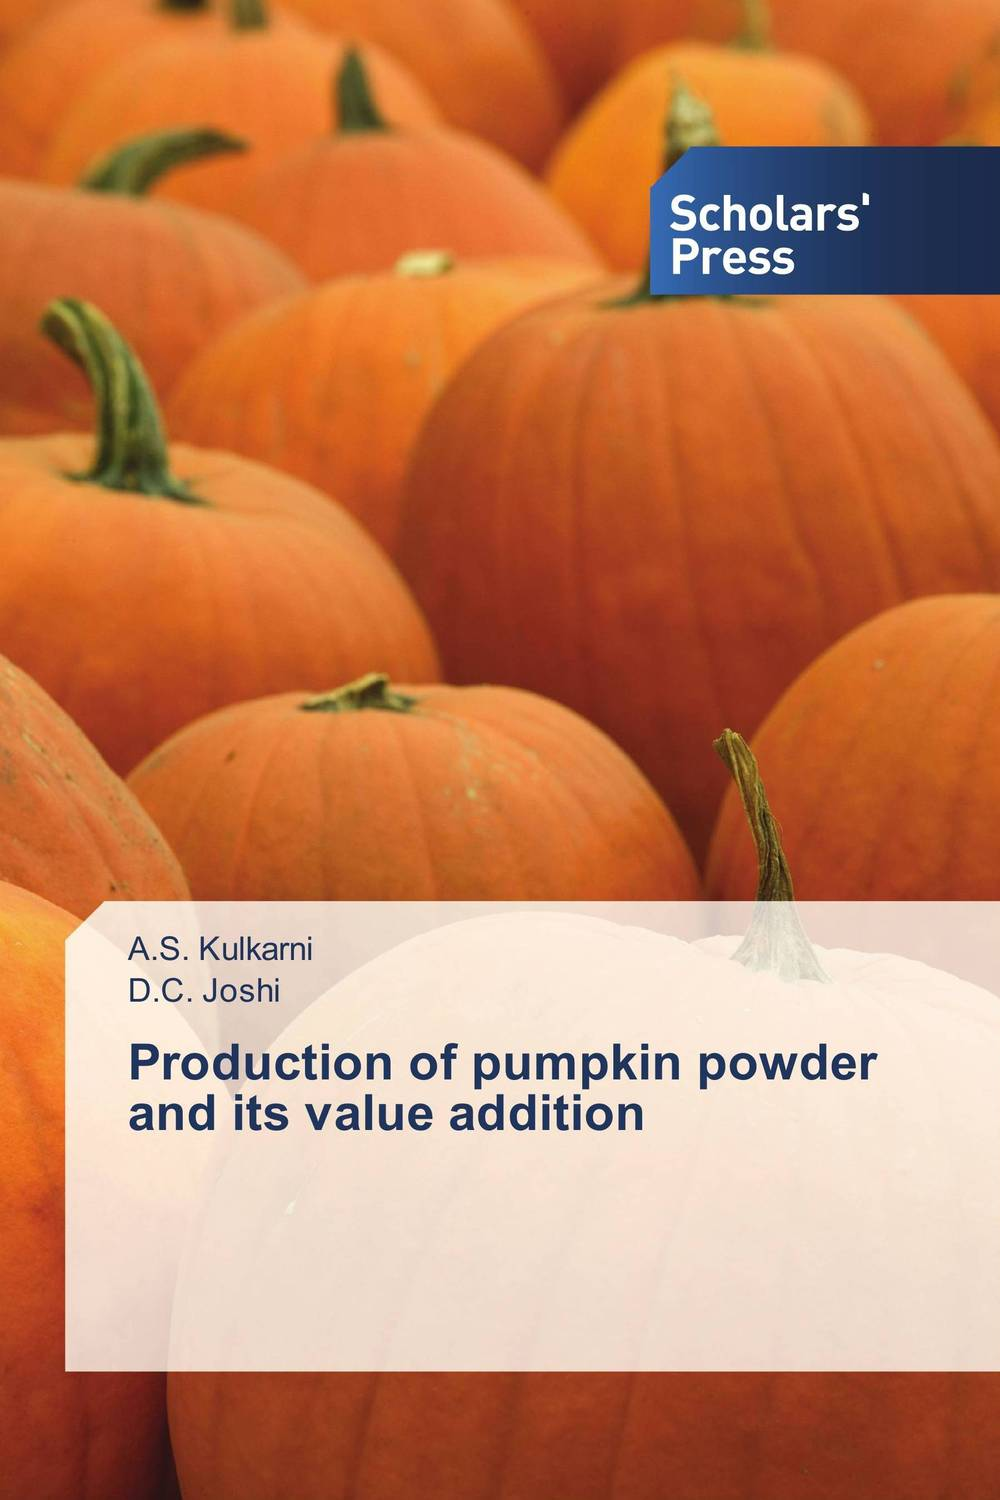 Production of pumpkin powder and its value addition adding value to the citrus pulp by enzyme biotechnology production